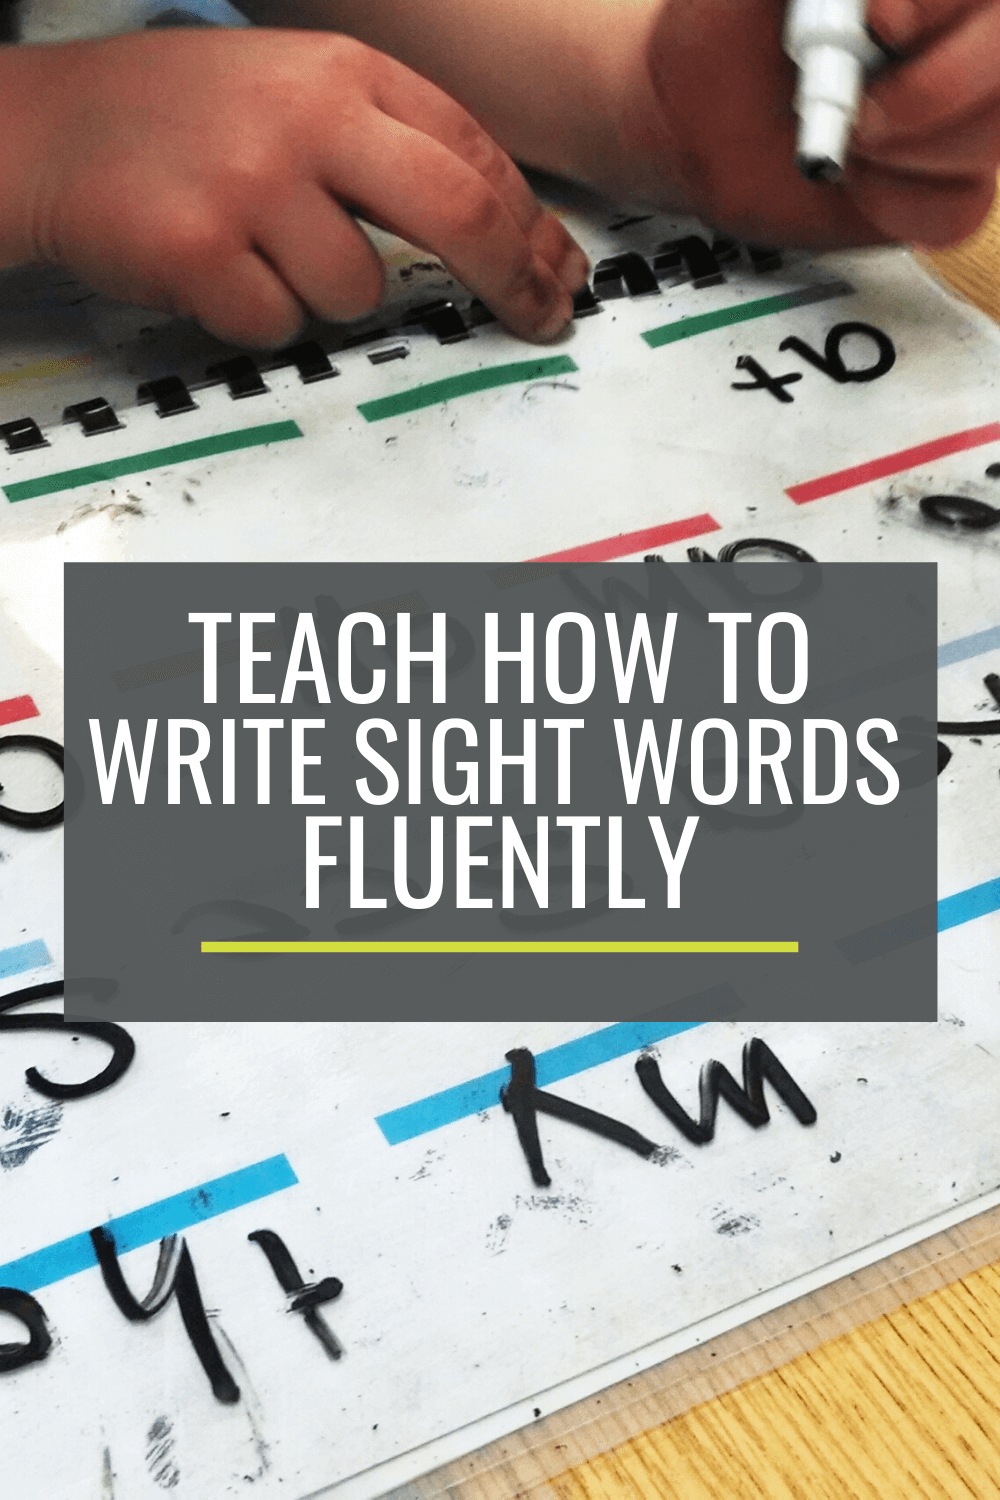 Teach How to Write Sight Words Fluently